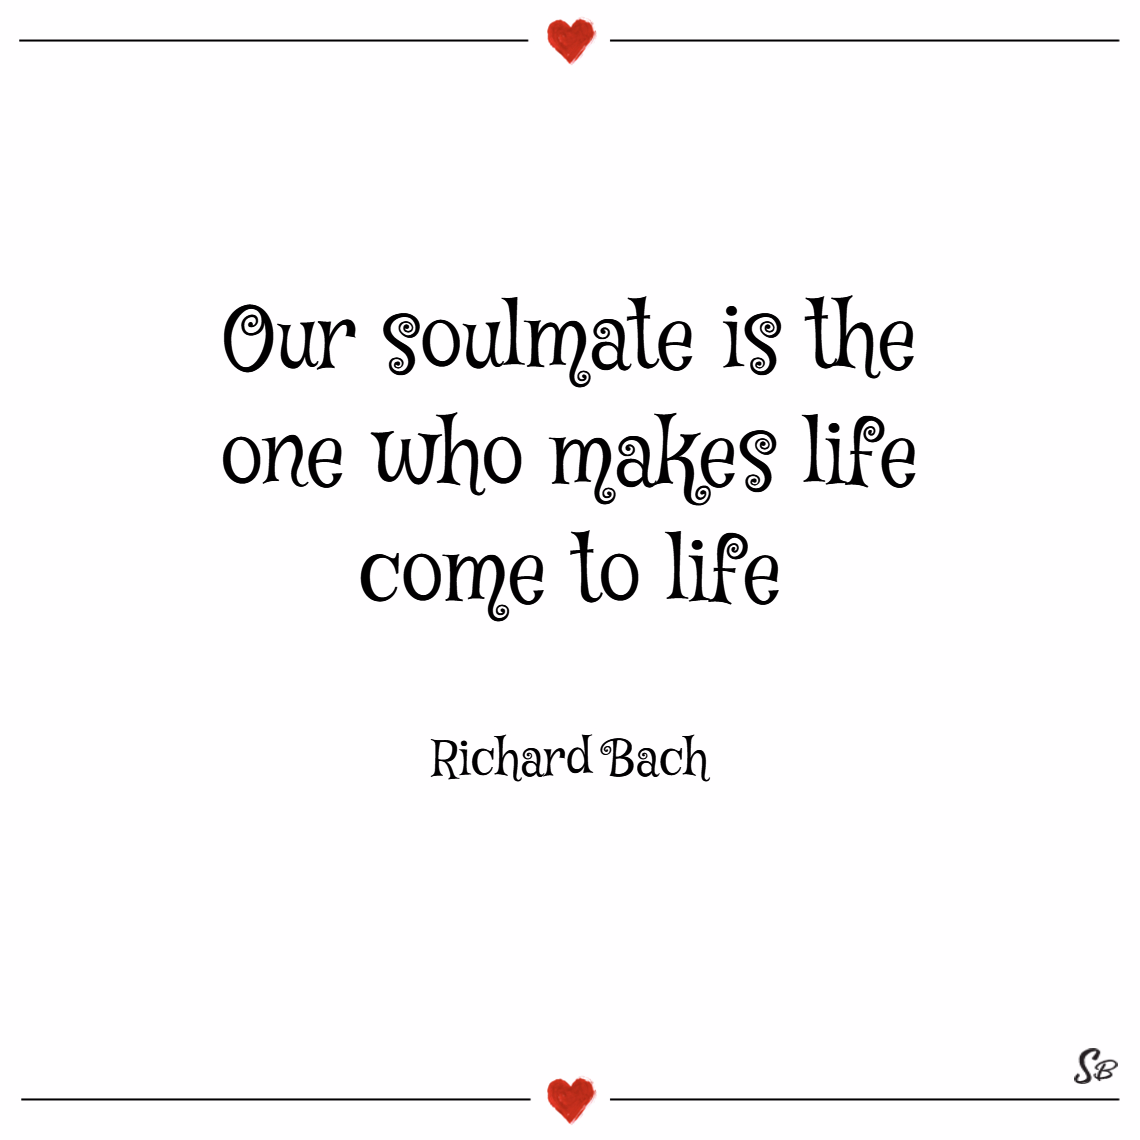 Our soulmate is the one who makes life come to life. – richard bach Soulmate quotes